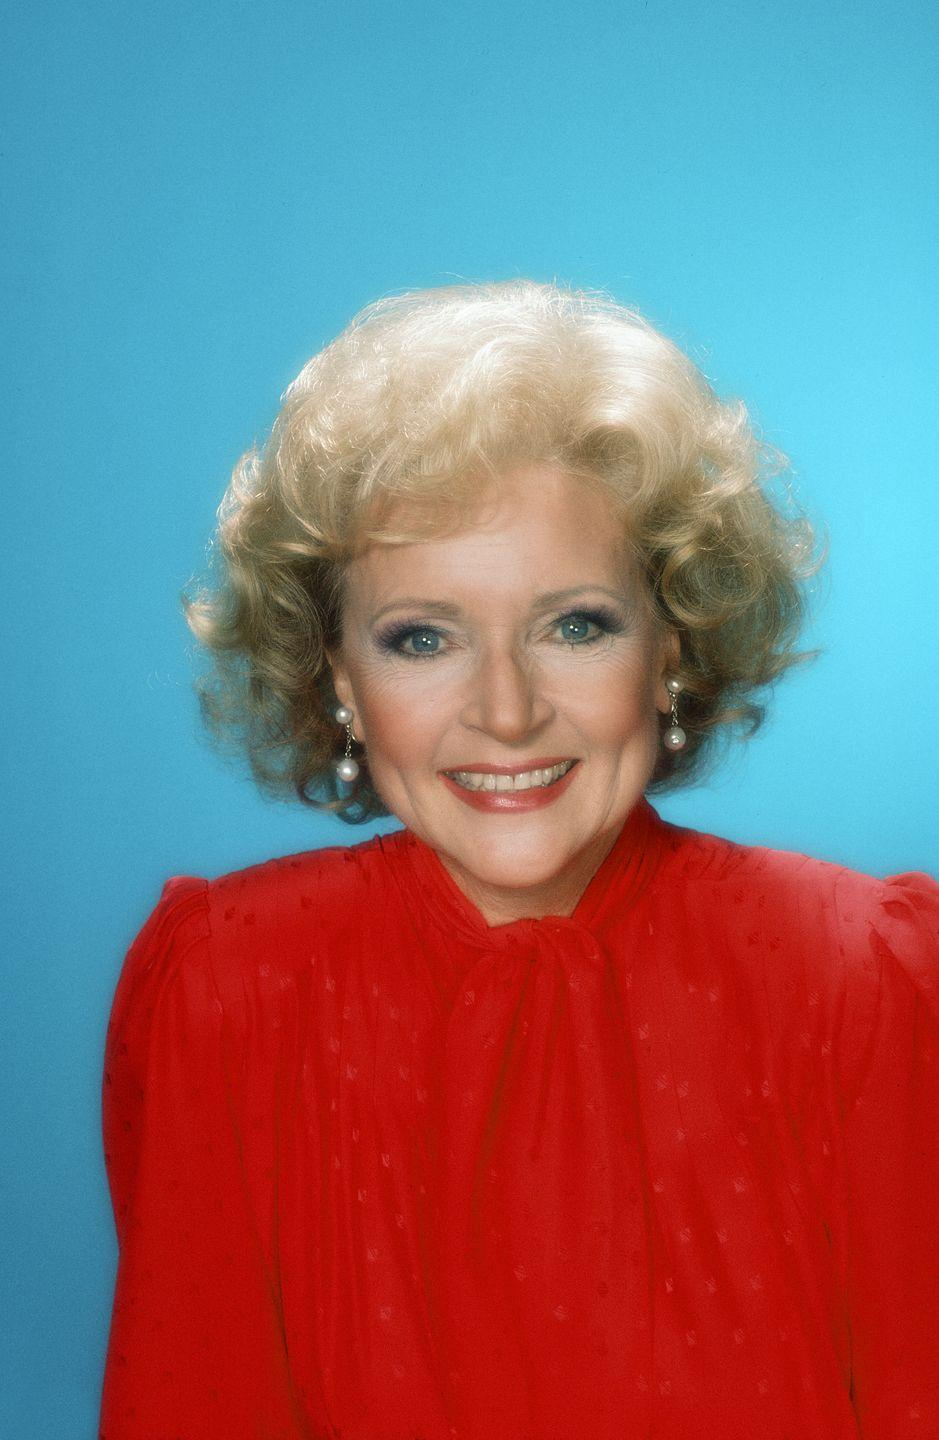 """<p>In 1983, White was the star of the NBC game show, <em>Just Men!</em>. That year, she became the first woman to win a Daytime Emmy Award in the category of Outstanding Game Show Host. She was <a href=""""http://edition.cnn.com/2010/LIVING/worklife/02/23/mf.betty.white.why.love/"""" rel=""""nofollow noopener"""" target=""""_blank"""" data-ylk=""""slk:once known as"""" class=""""link rapid-noclick-resp"""">once known as</a> the 'First Lady of Game Shows.' </p>"""